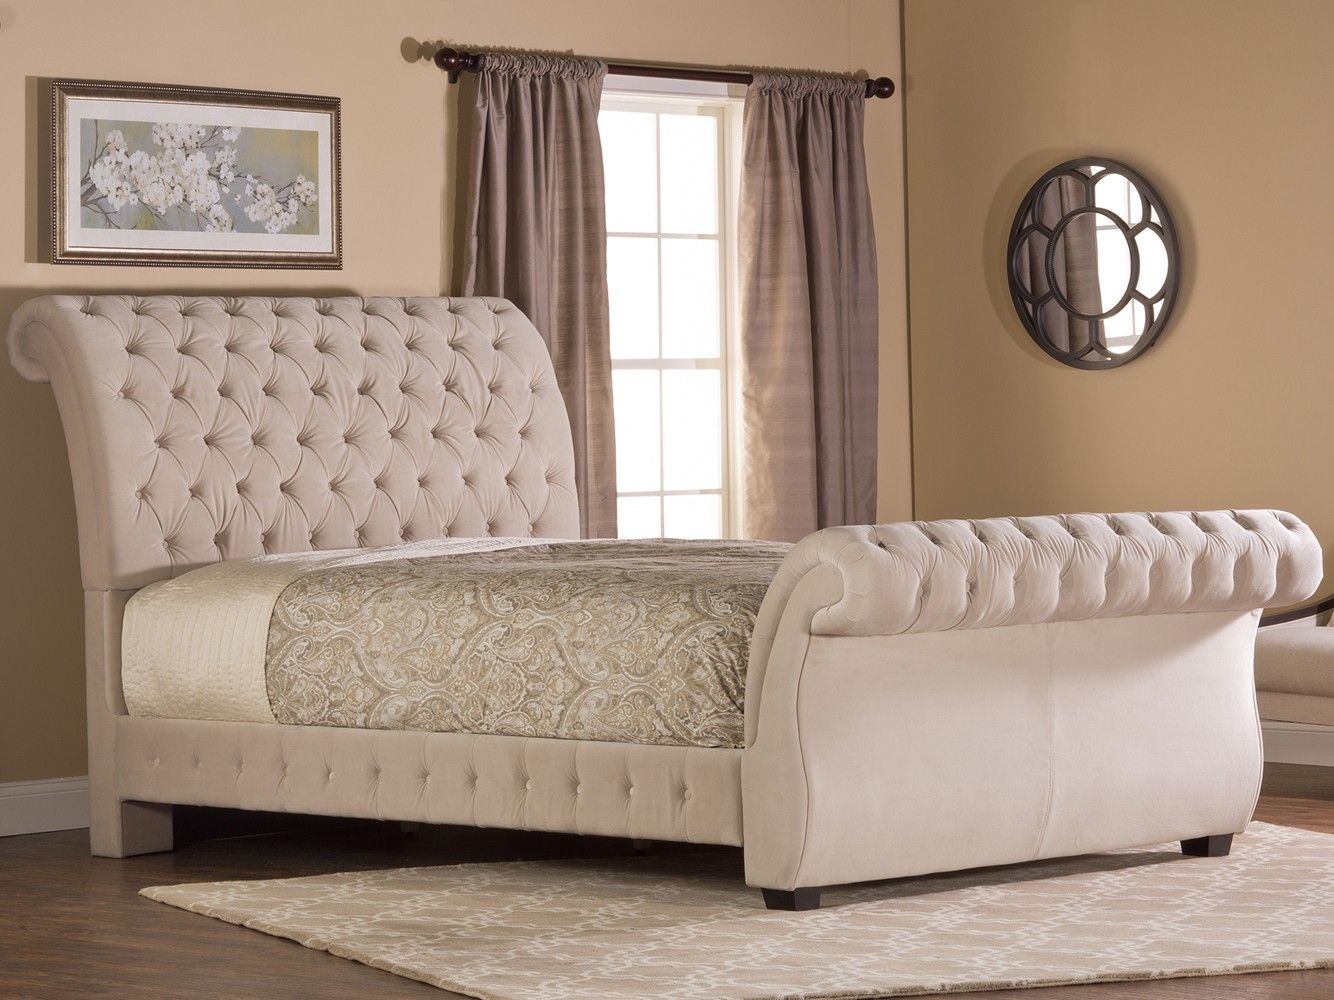 Bombay Fabric Upholstered Bed in Buckwheat by Hillsdale Furniture Diamond Tufted Fabric